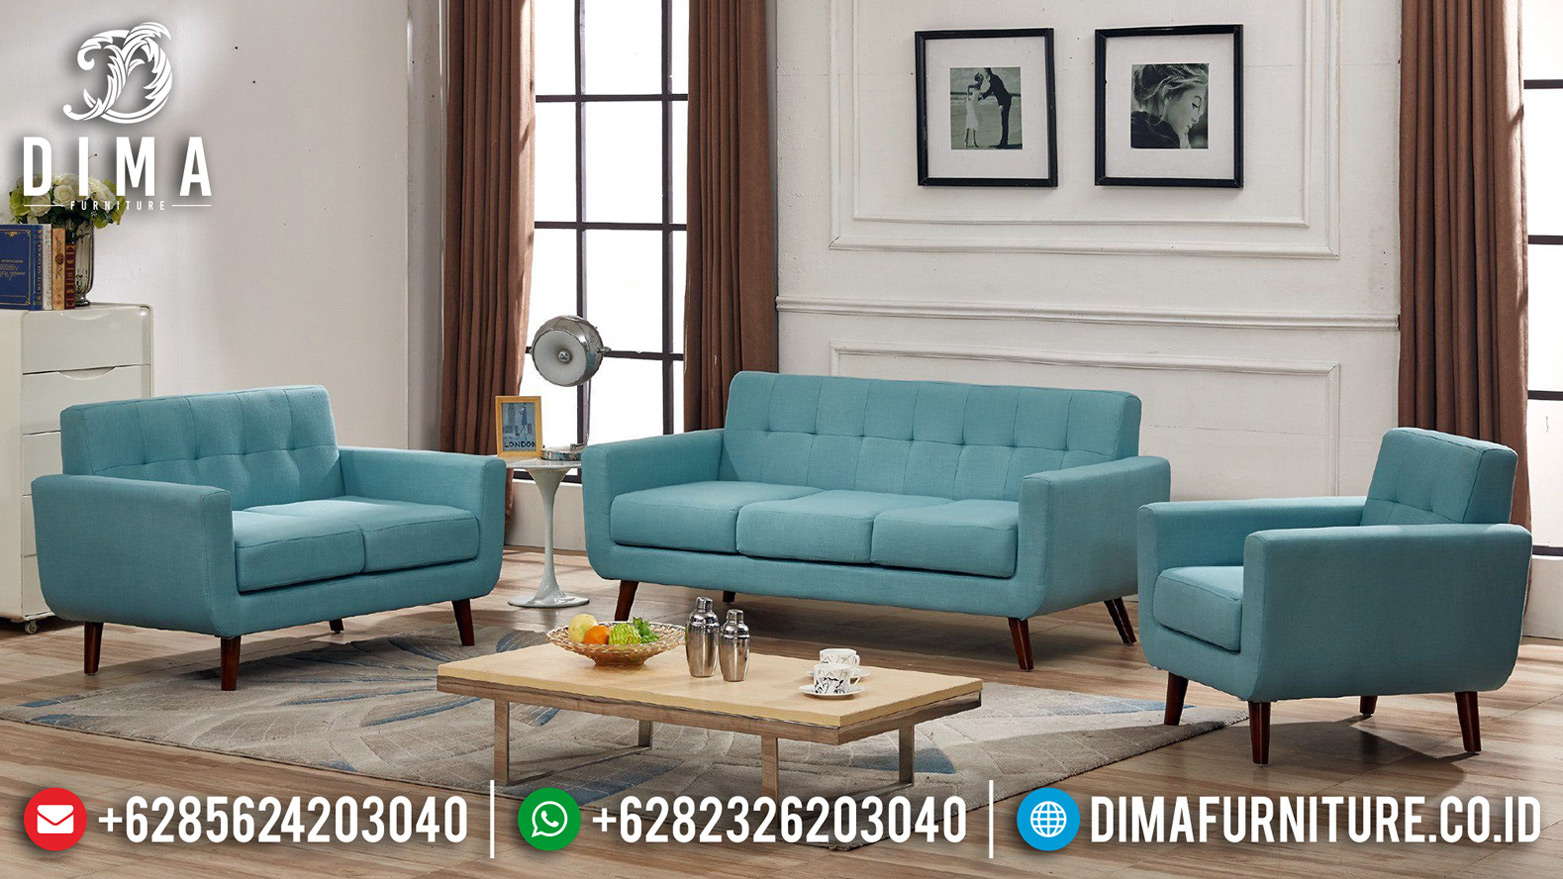 New Sofa Tamu Minimalis Klasik French Retro Style Natural BT-0665